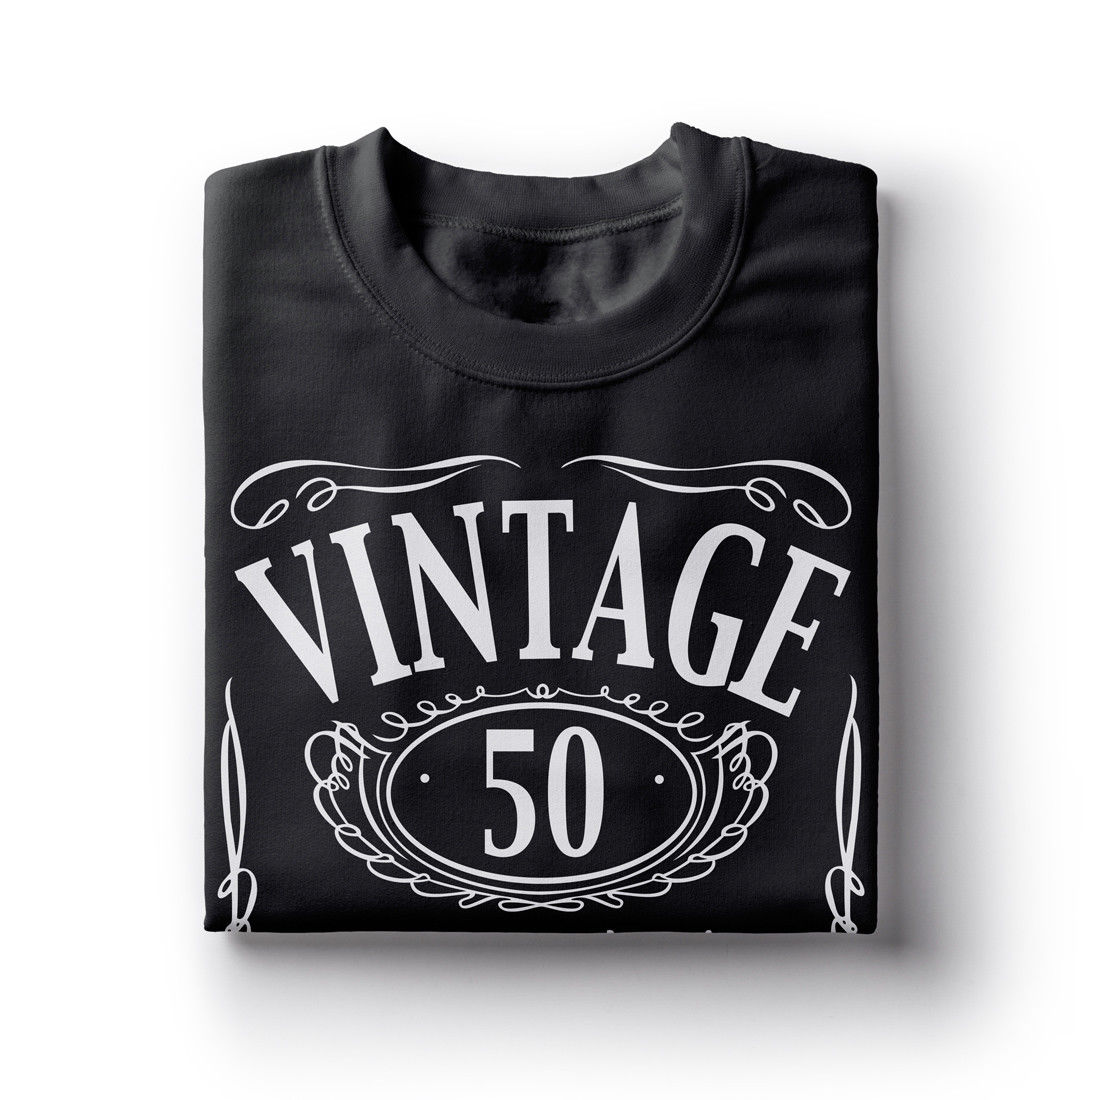 50th Birthday Vintage Made In 1968 Funny Printed T Shirt Men 39 S T Shirts Summer Style Fashion Swag Men T Shirts free shipping in T Shirts from Men 39 s Clothing